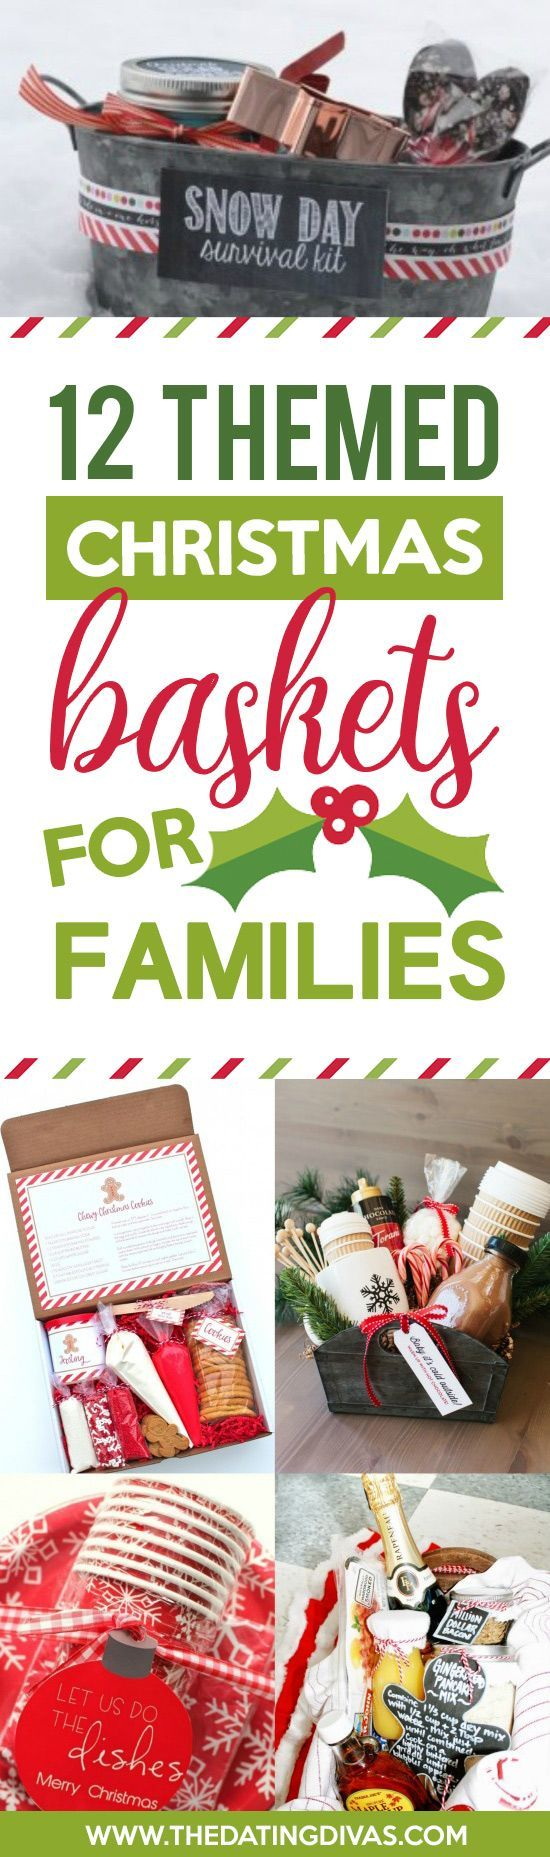 Best 25+ Family christmas gifts ideas on Pinterest | Christmas ...